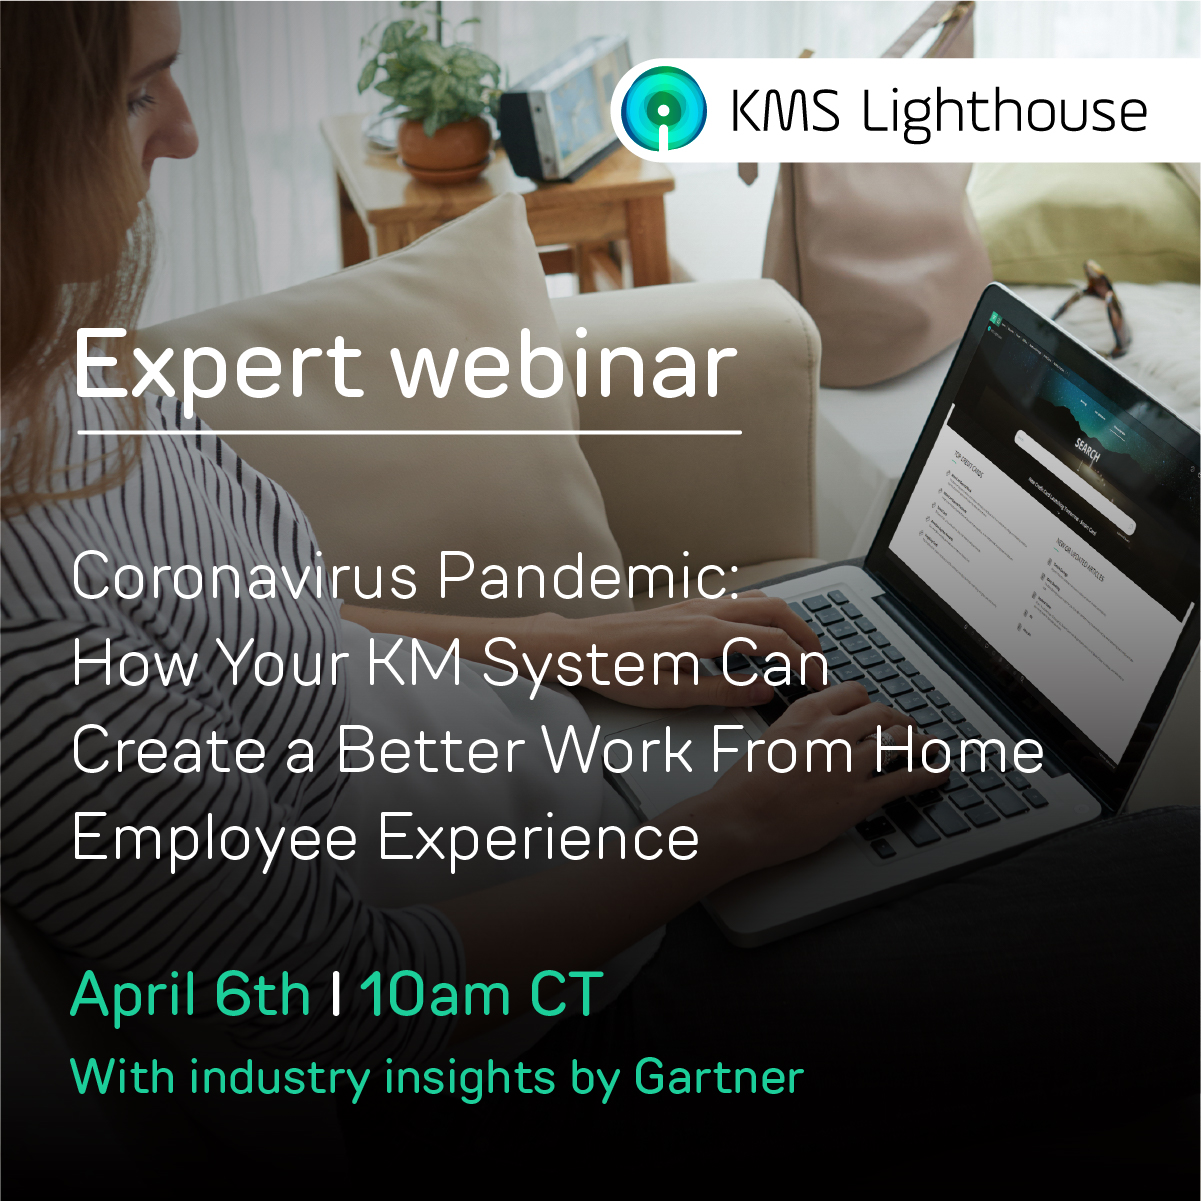 Watch the webinar with Gartner on how to manage your EX during the Corona-virus pandemic